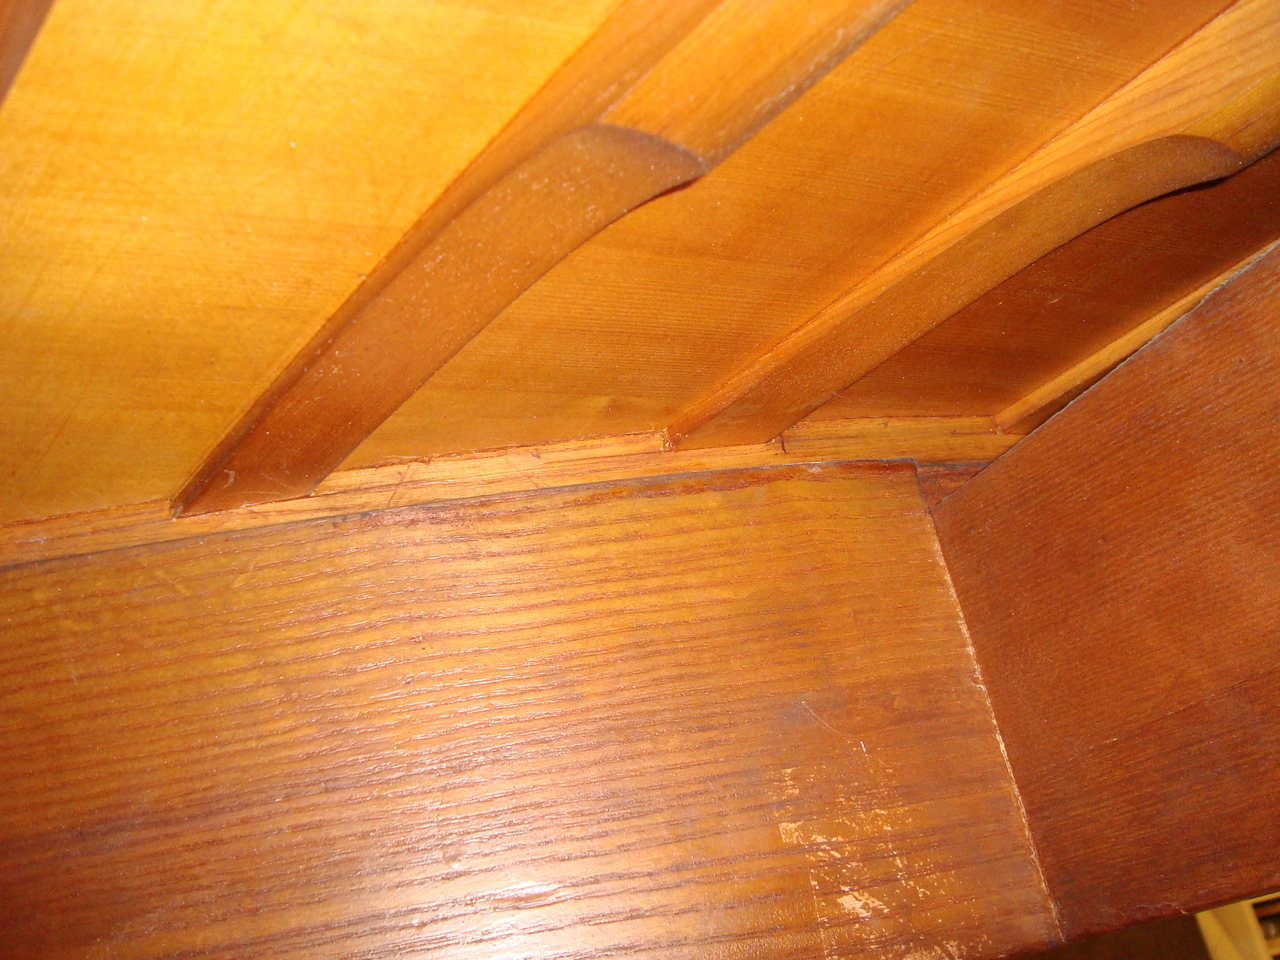 The massive rim of the Stieff piano